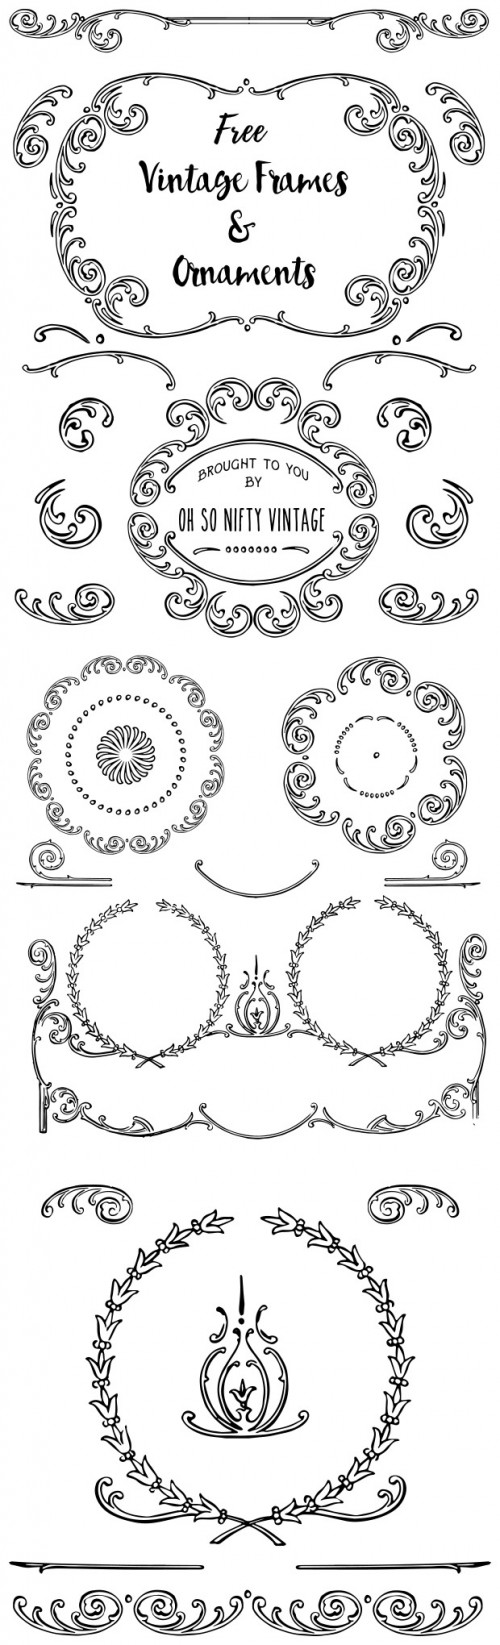 VGOSN-Free-Vintage-Frames-Ornaments-prev-2-500x1645